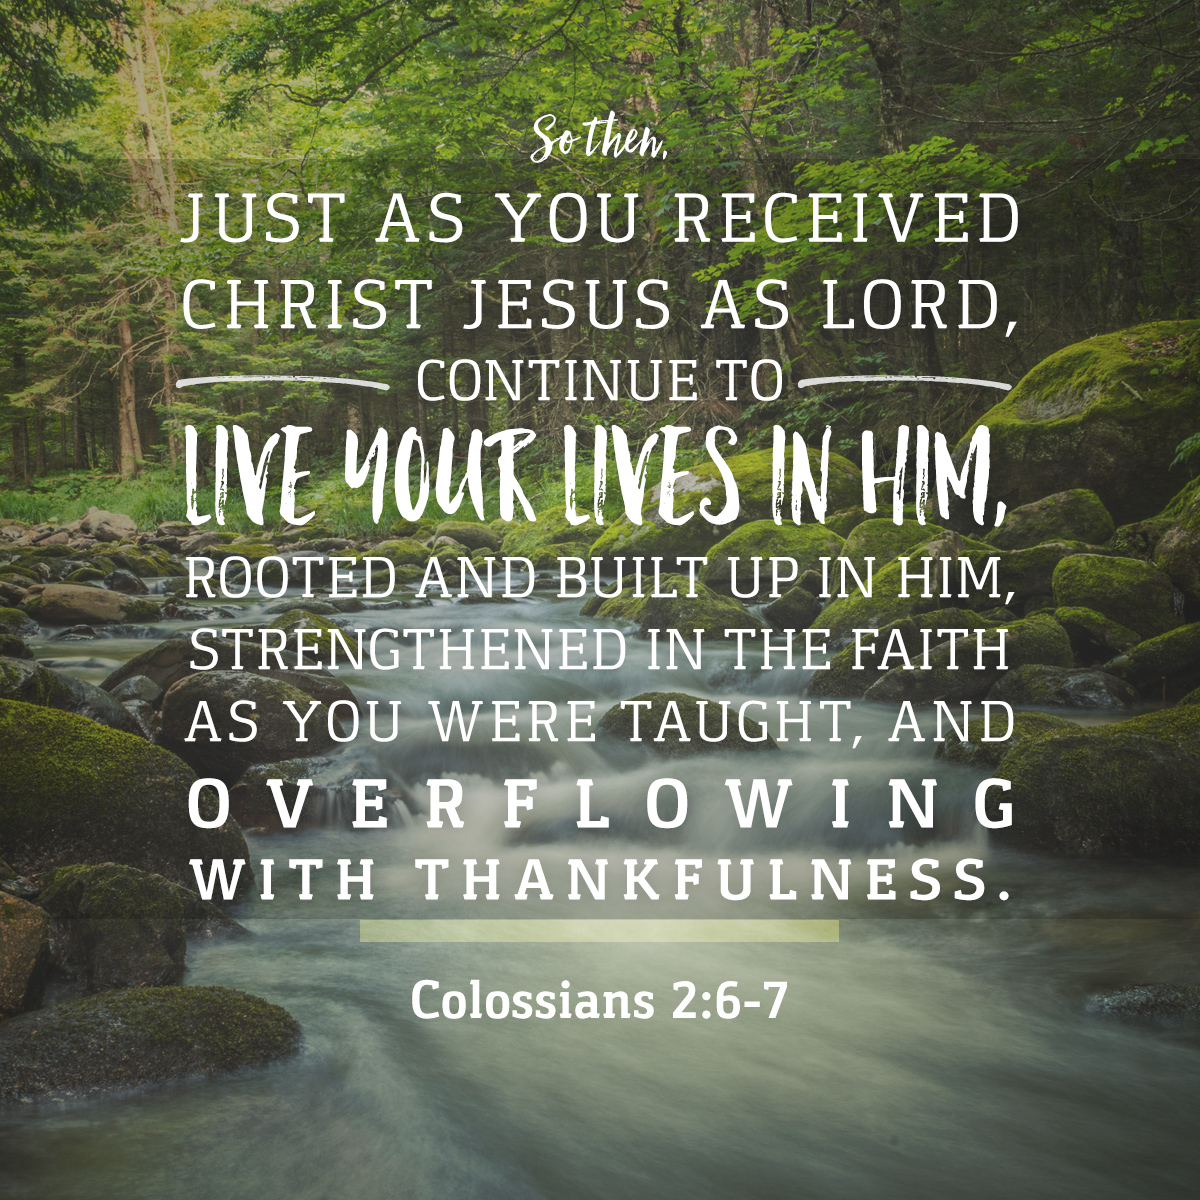 Colossians 2:6-7 Daily Verse